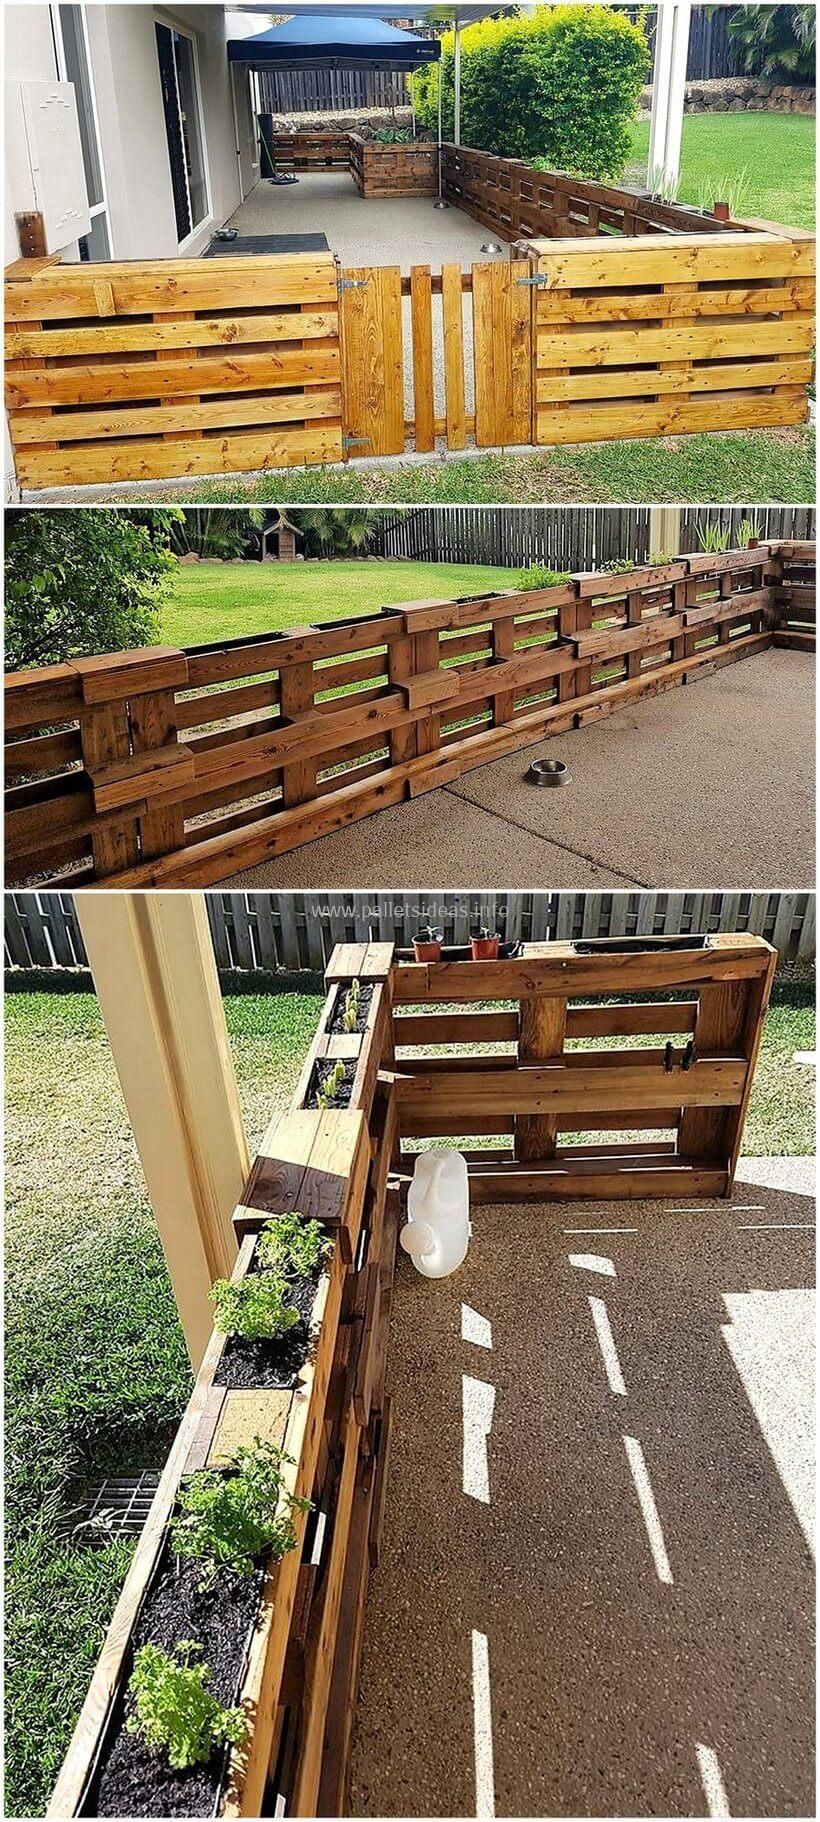 Creative Diy Ideas Wood Pallet Recyling Projects